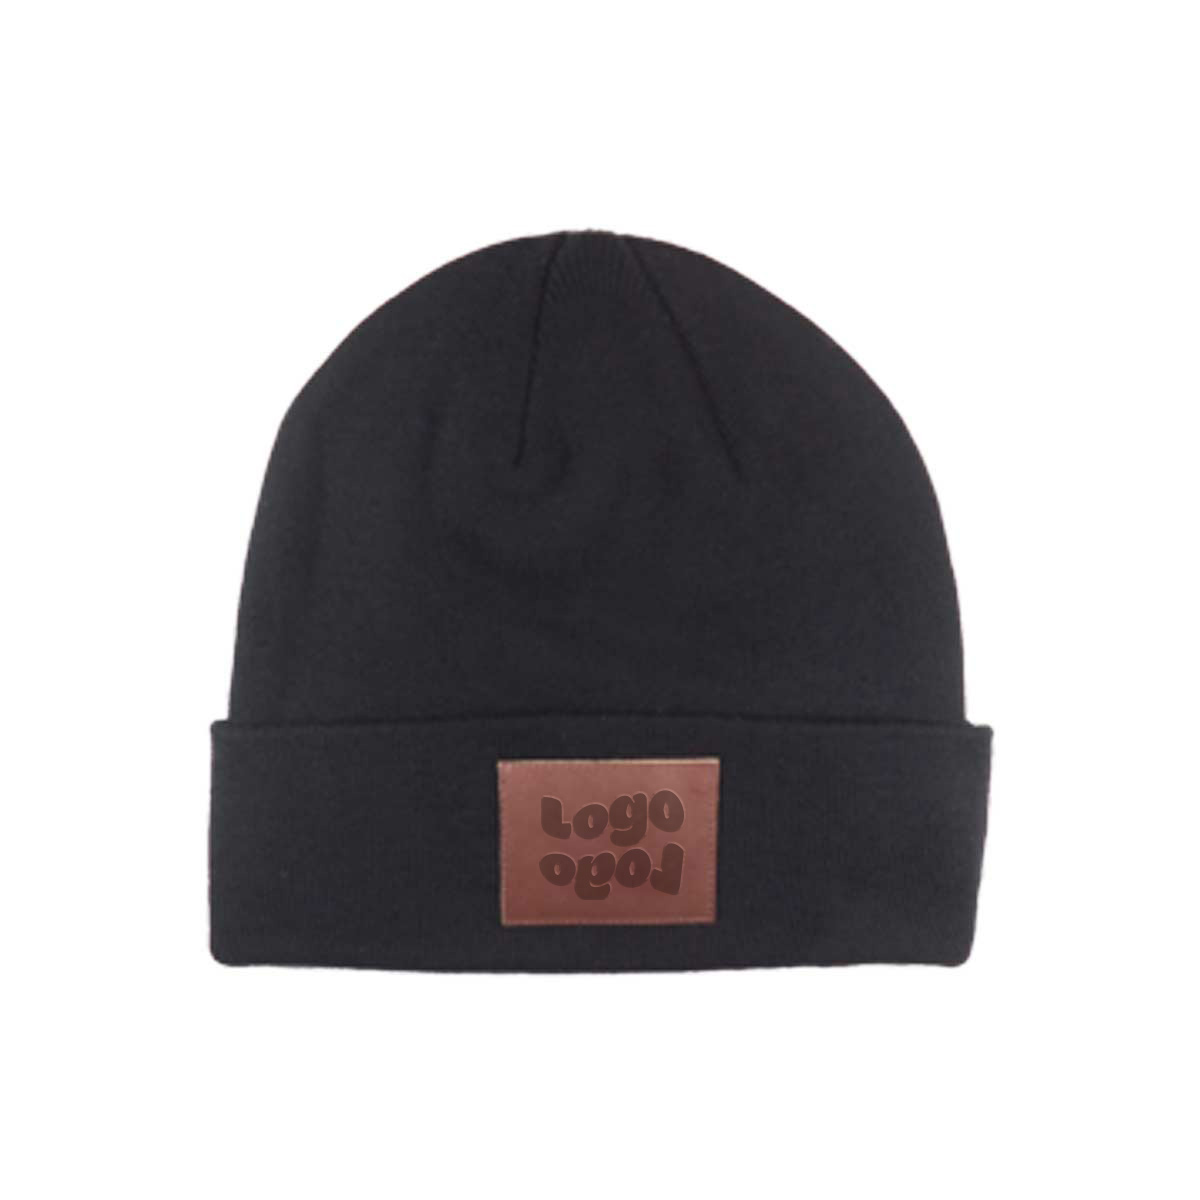 269640 reverie beanie one location blind deboss